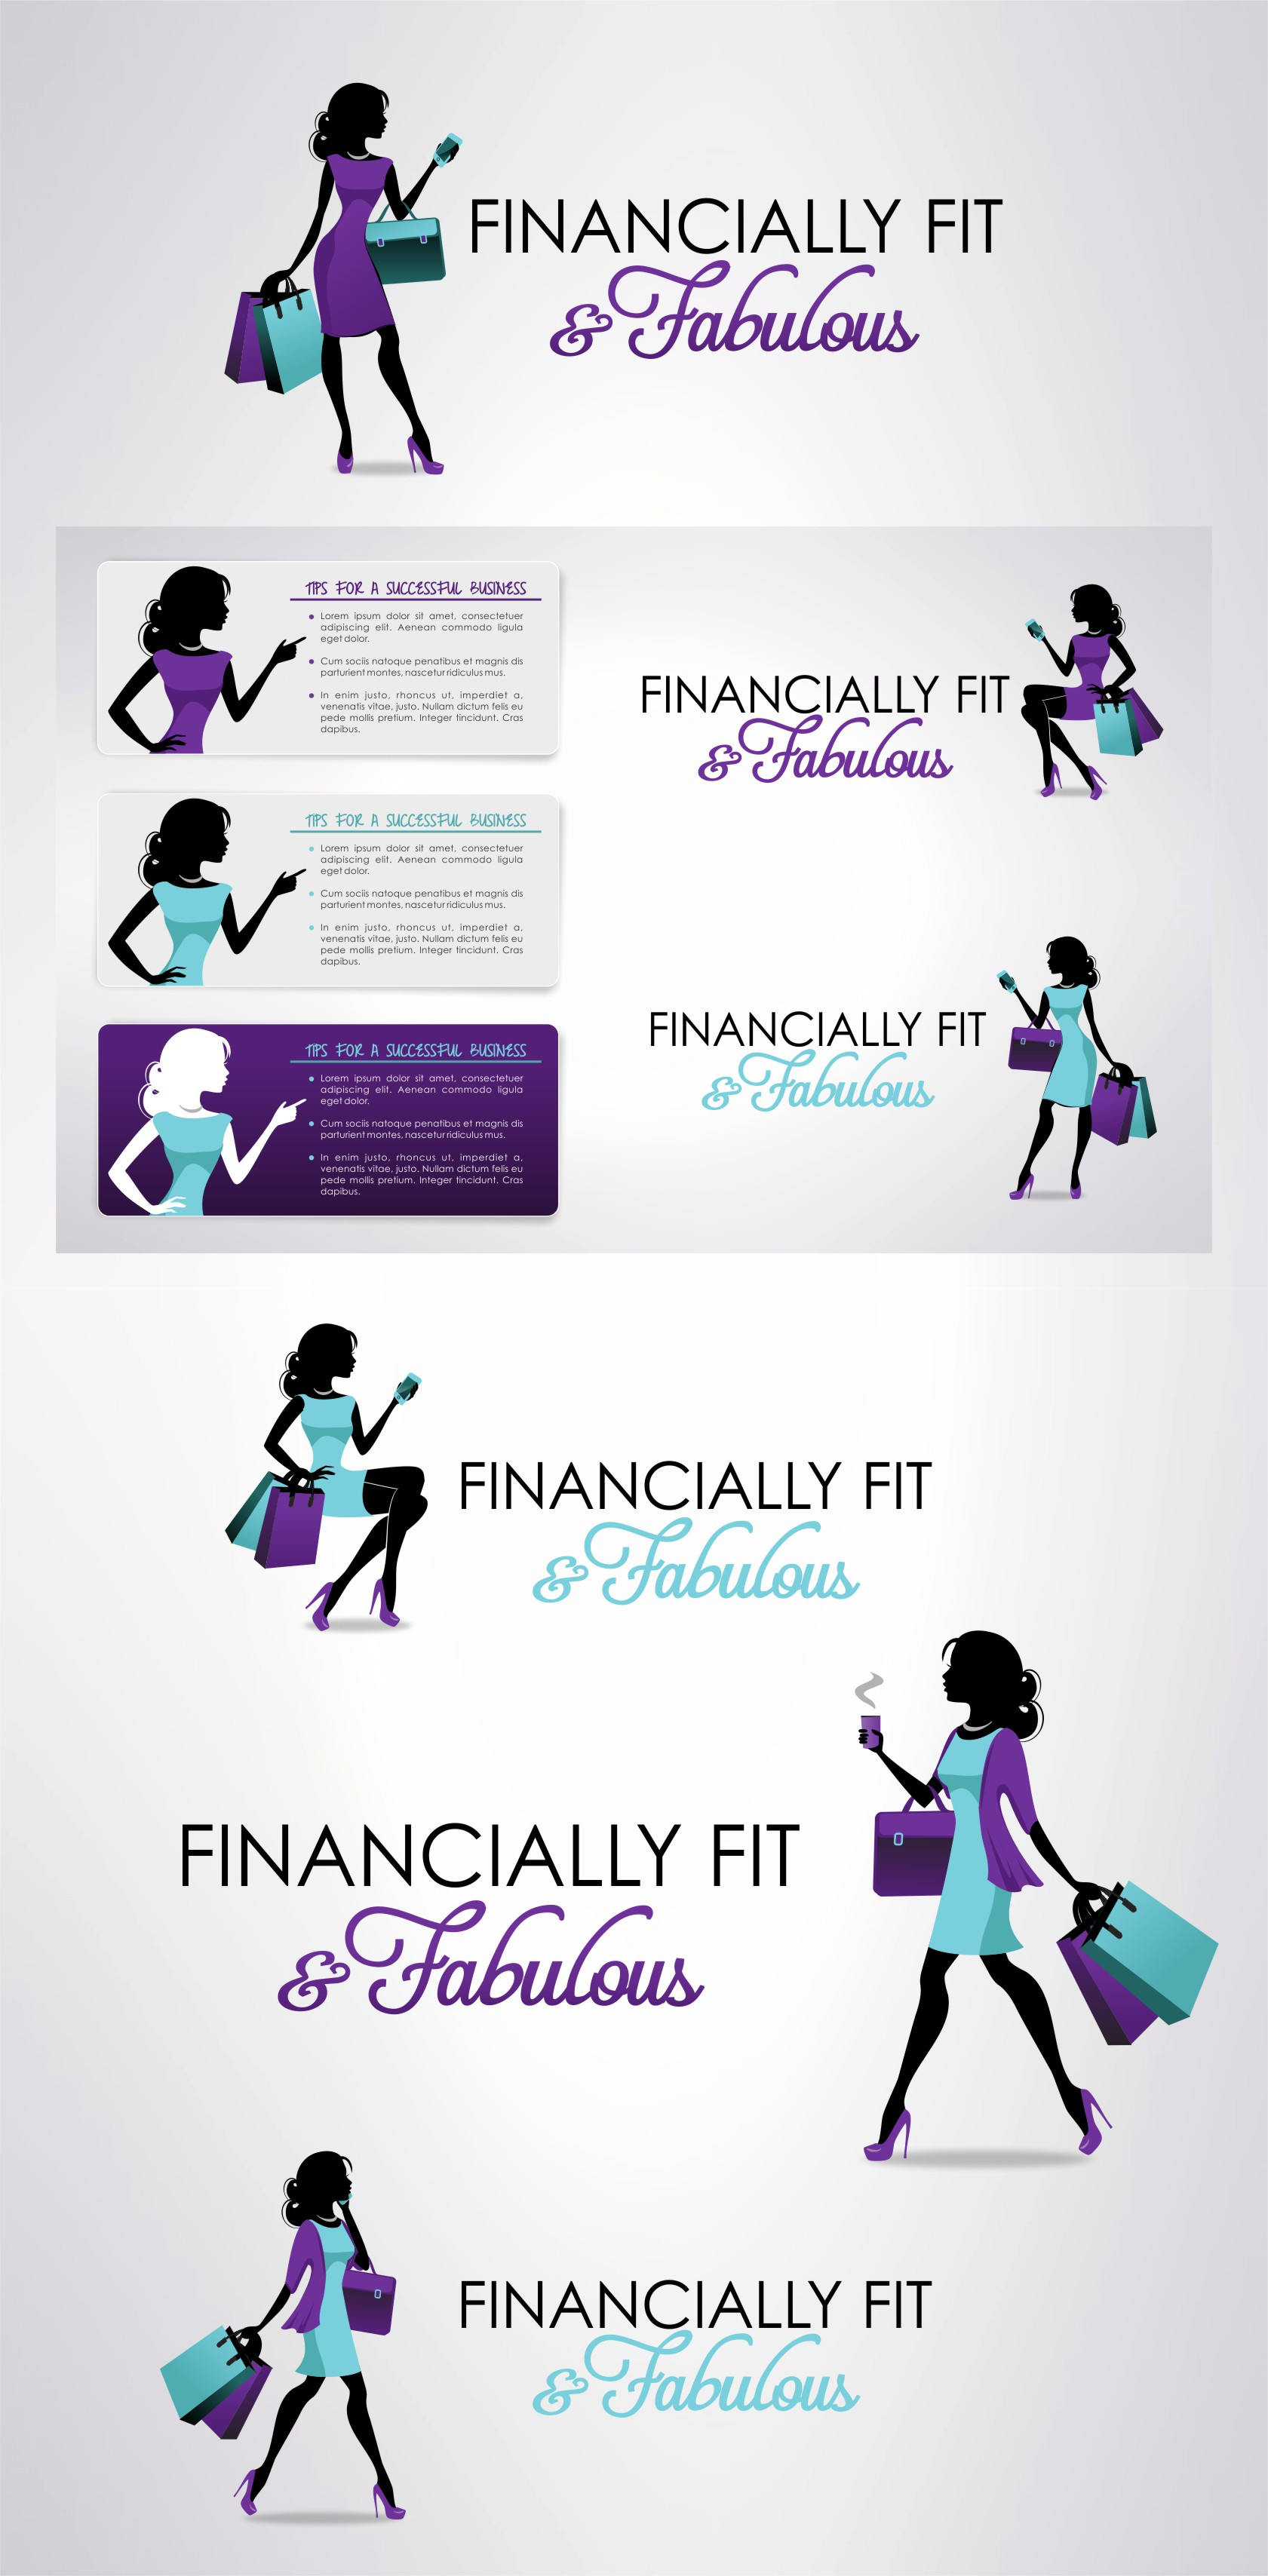 Create a logo with a touch of pizzazz for Financially Fit & Fabulous